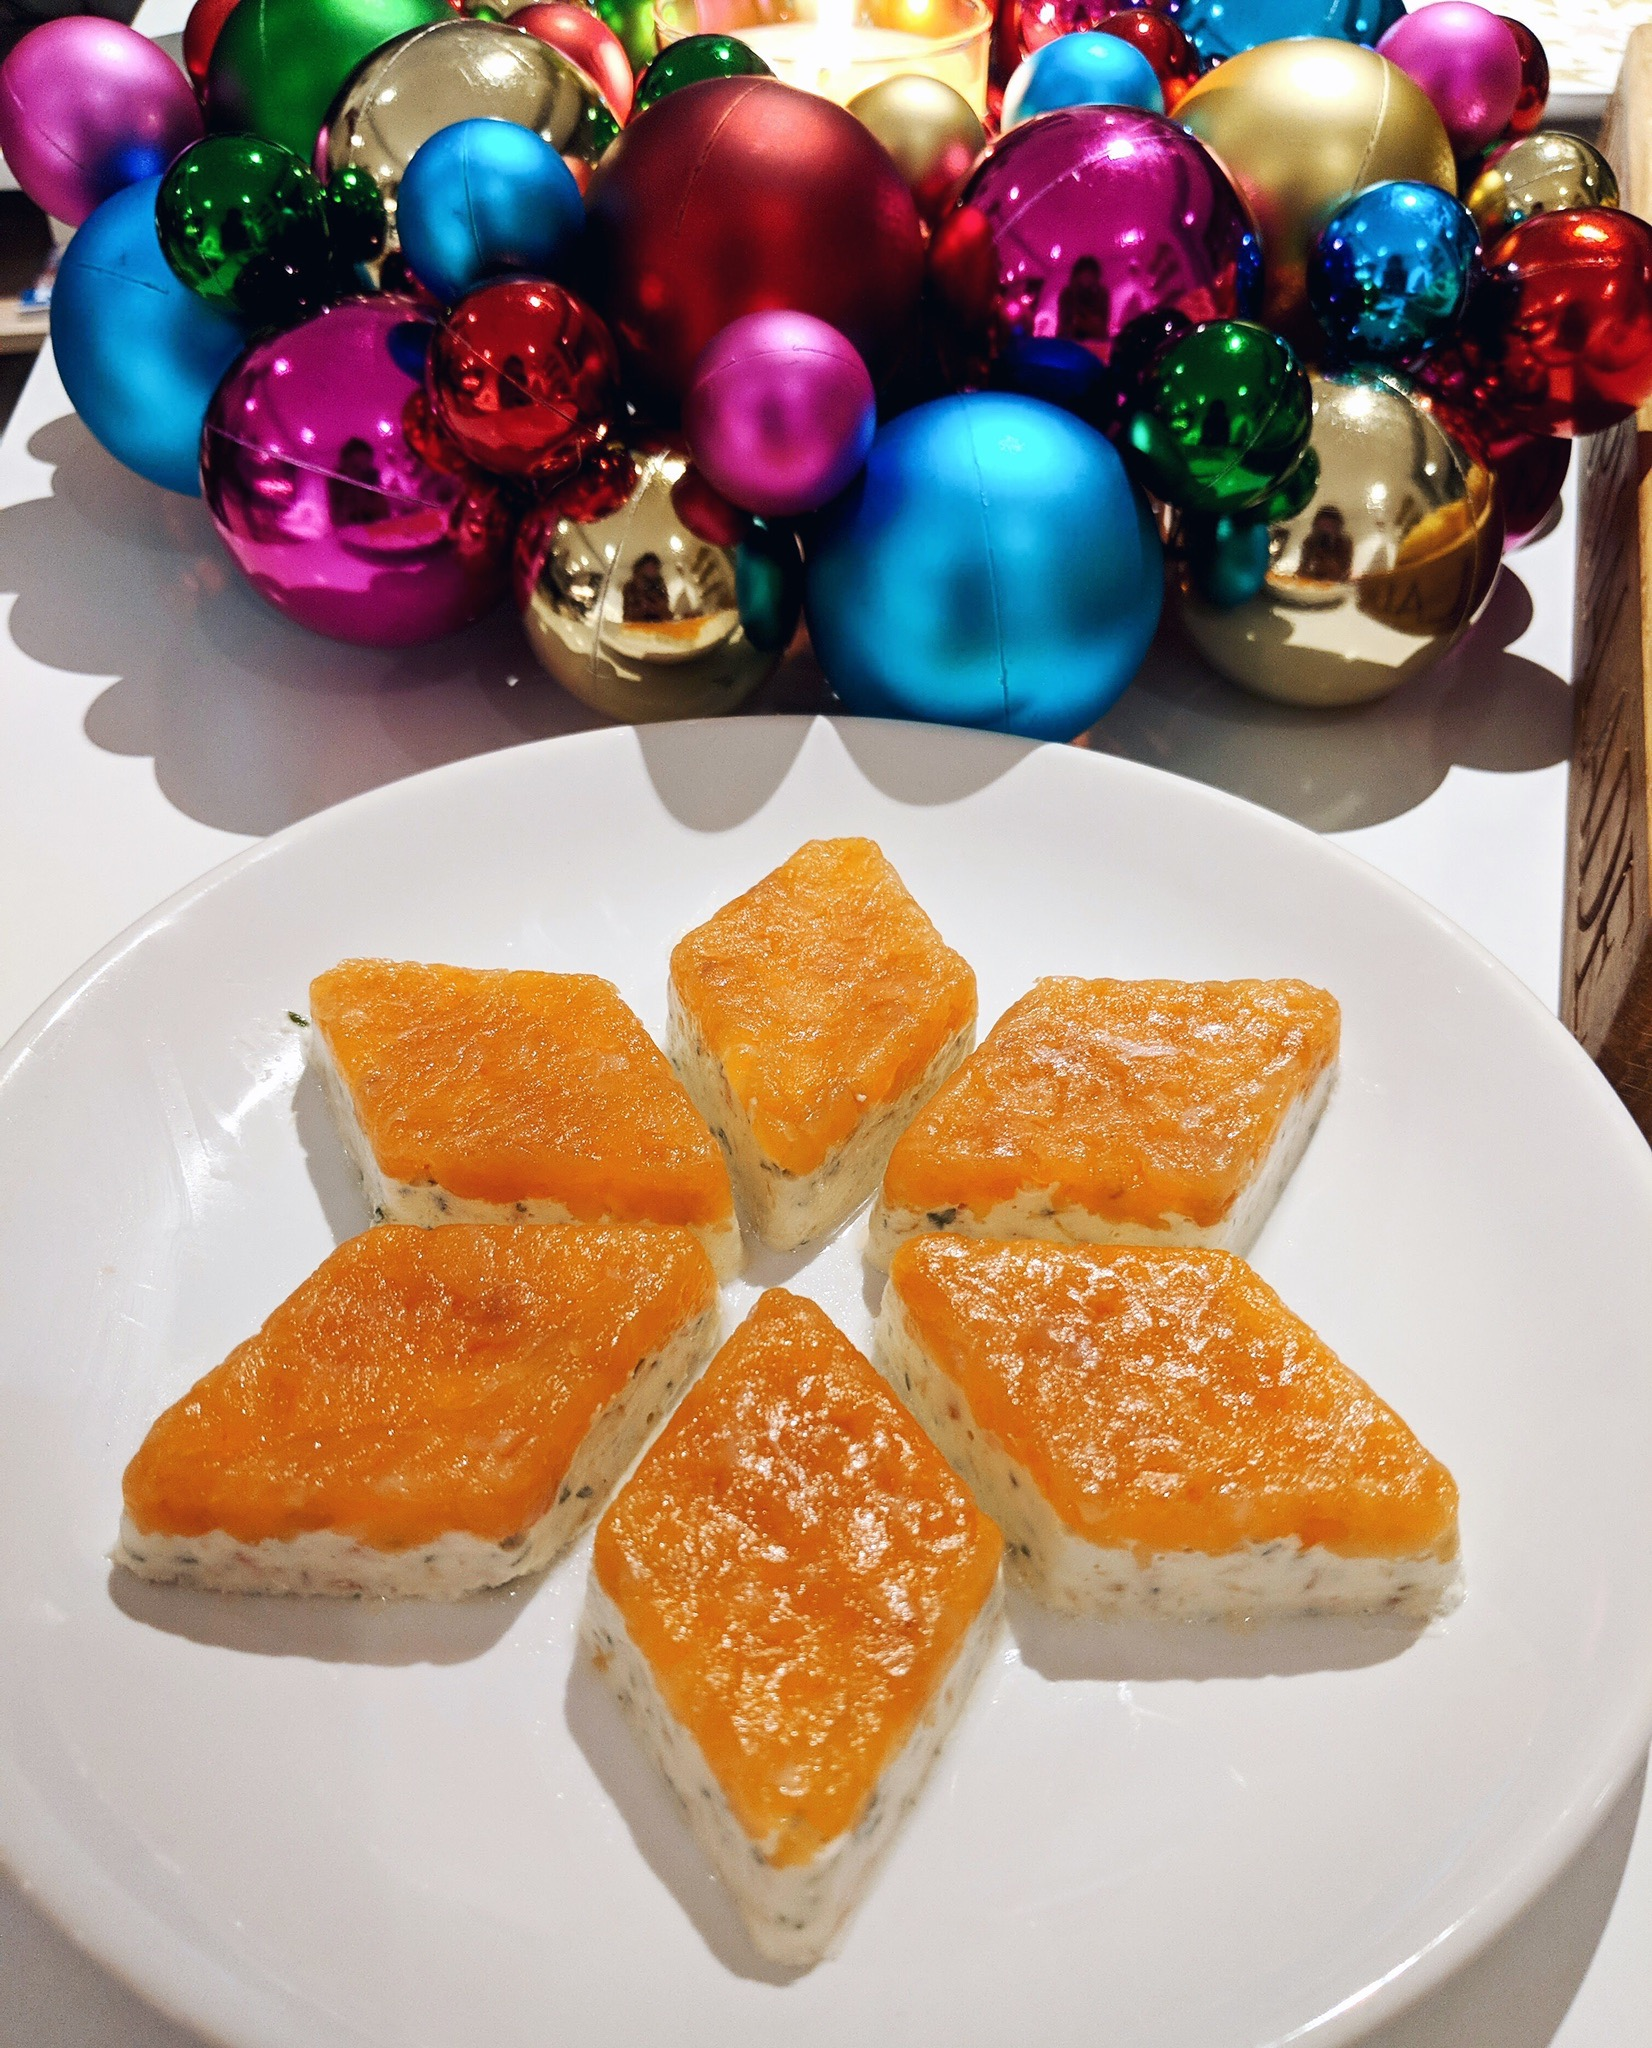 iceland luxury food christmas cocoa chelsea smoked salmon terrine